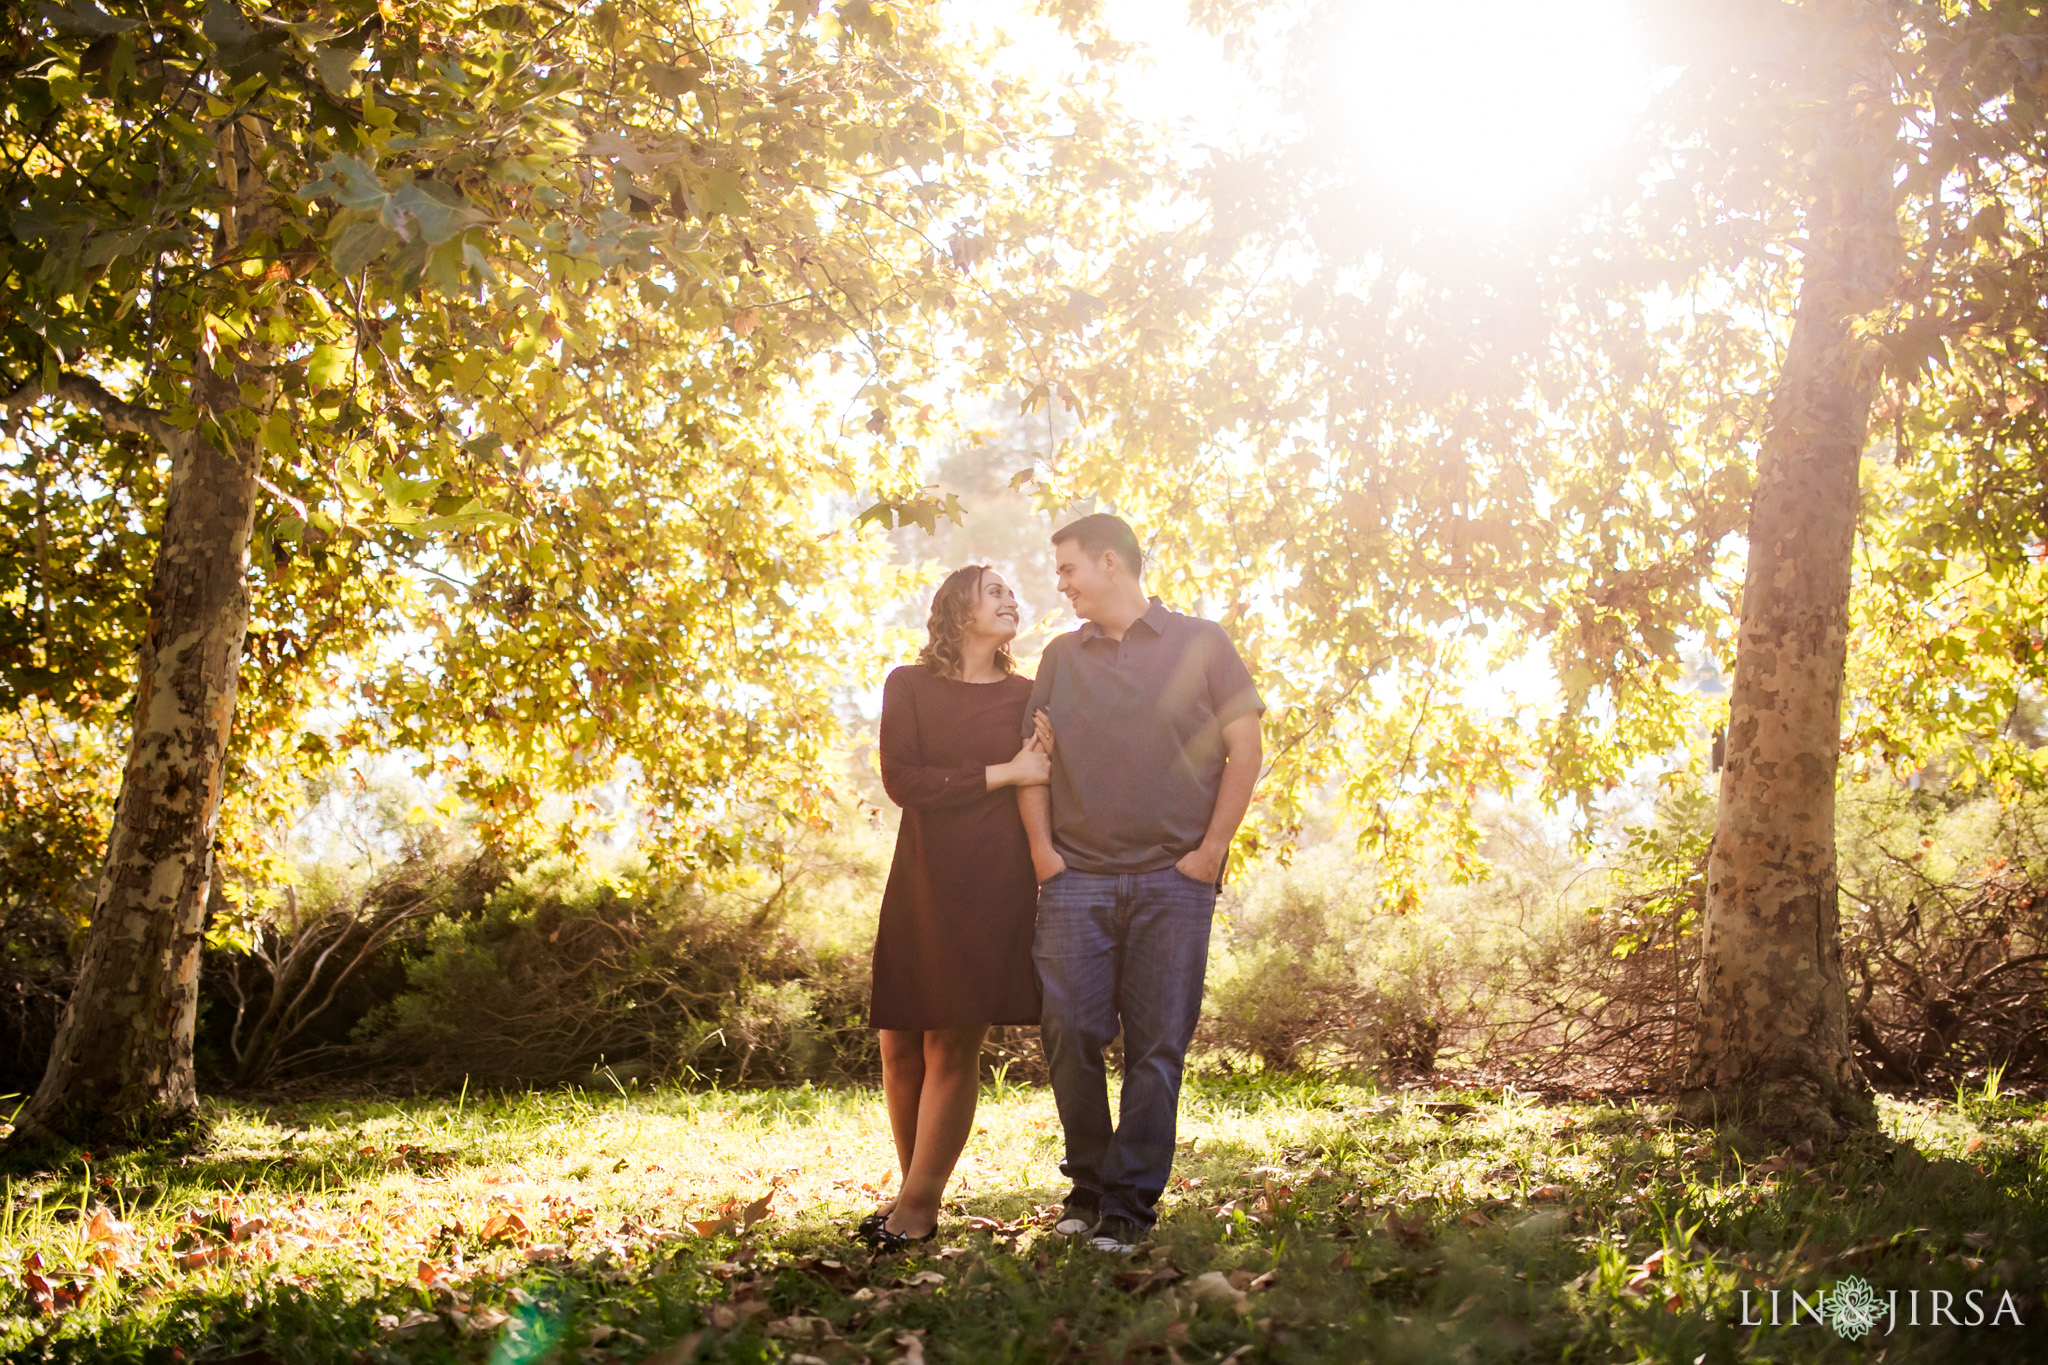 002 cedar grove park orange county engagement photography